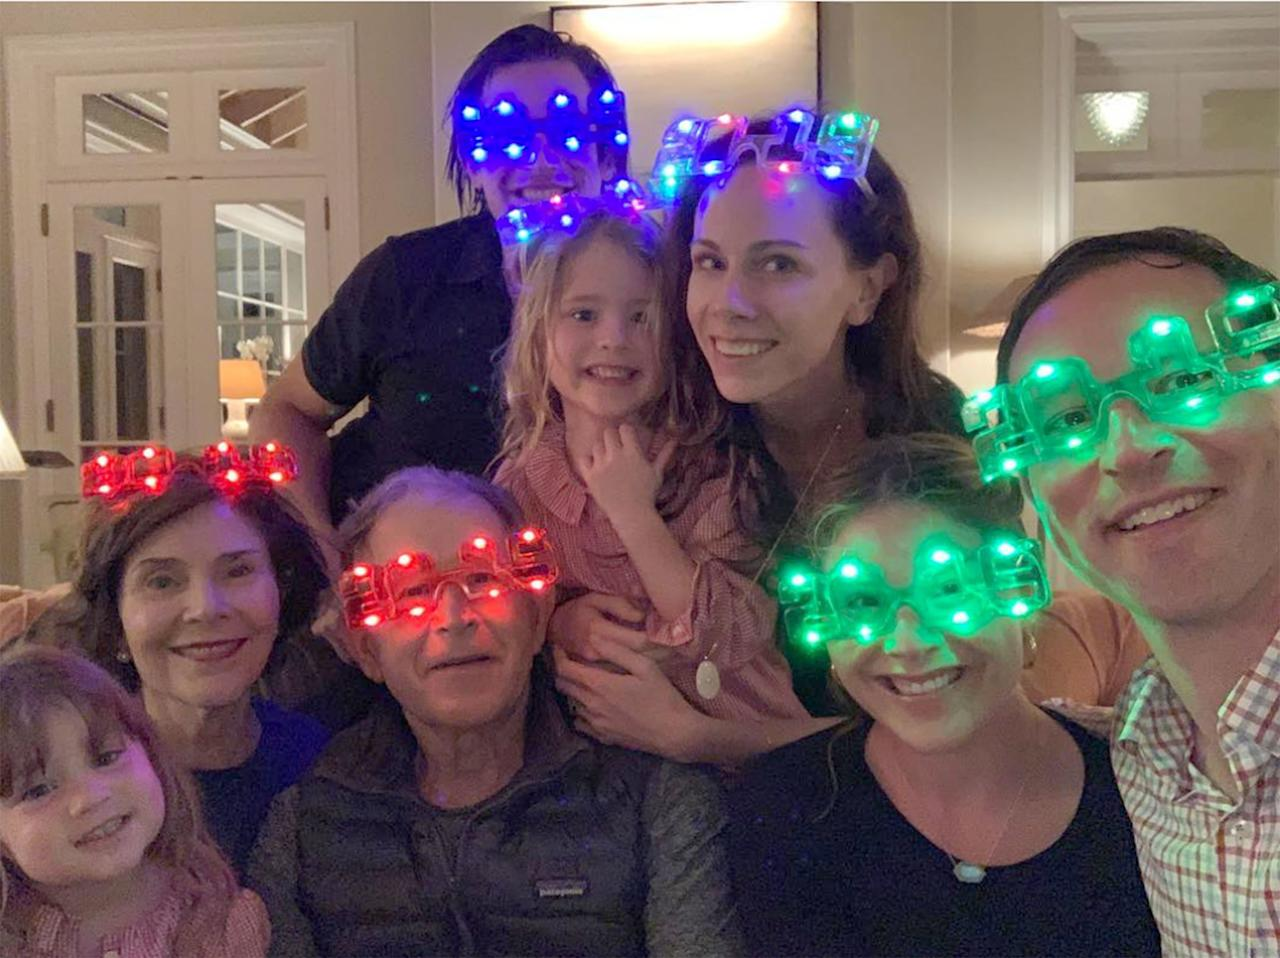 """Happiest New Year—2019 is going to be good!! (PS: does the countdown still count at 8ish?),"" Jenna captioned the super-fun <a href=""https://www.instagram.com/p/BsE3aoihuZ3/"">family photo, joking about putting her girls down early.</a>"